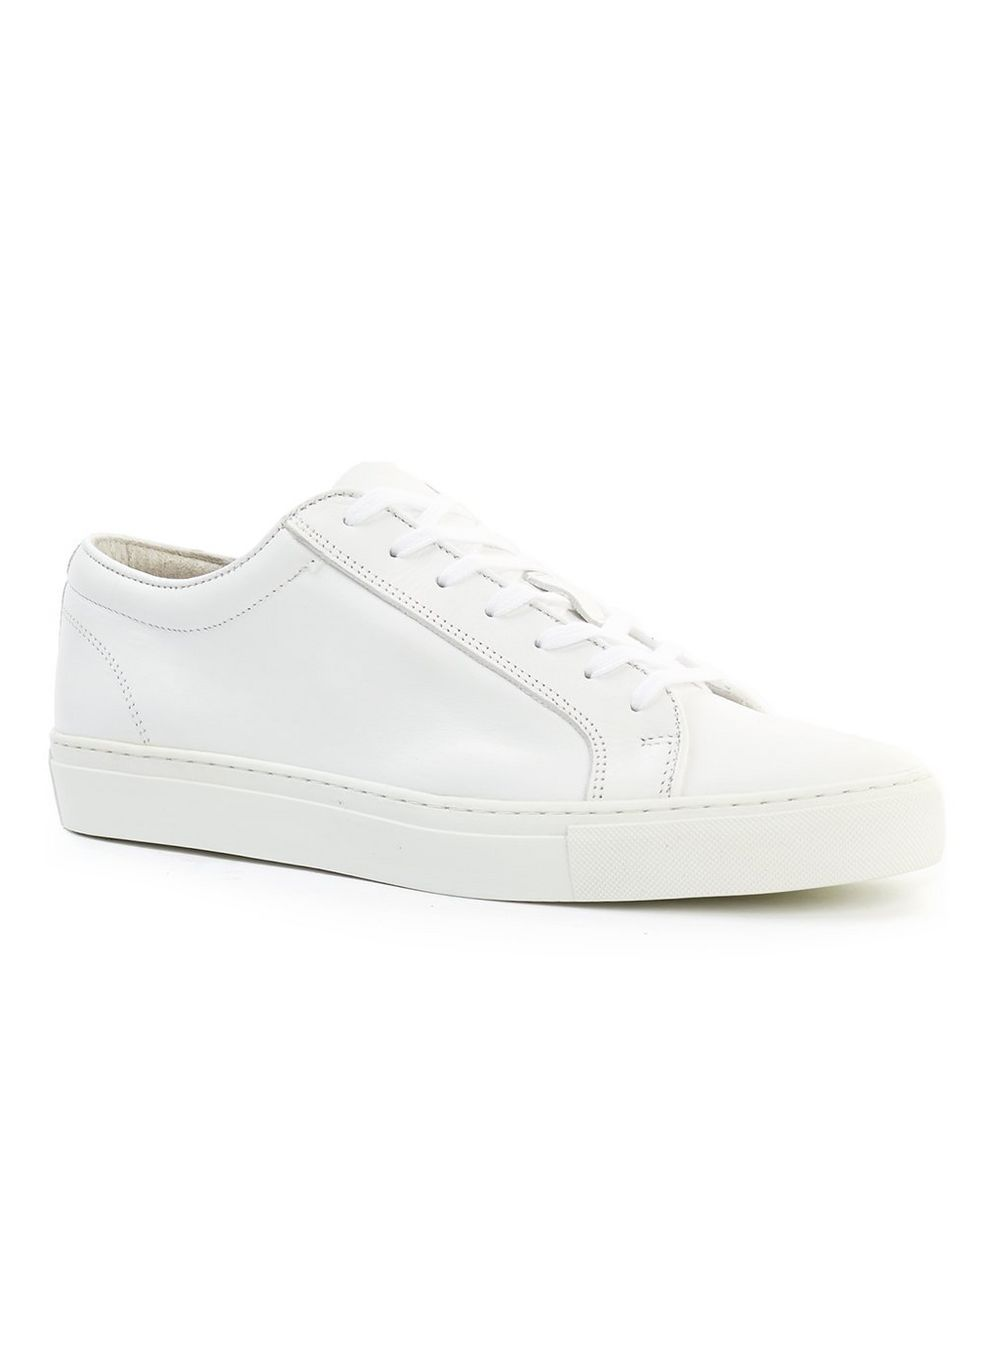 TOPMAN White Leather Trainers